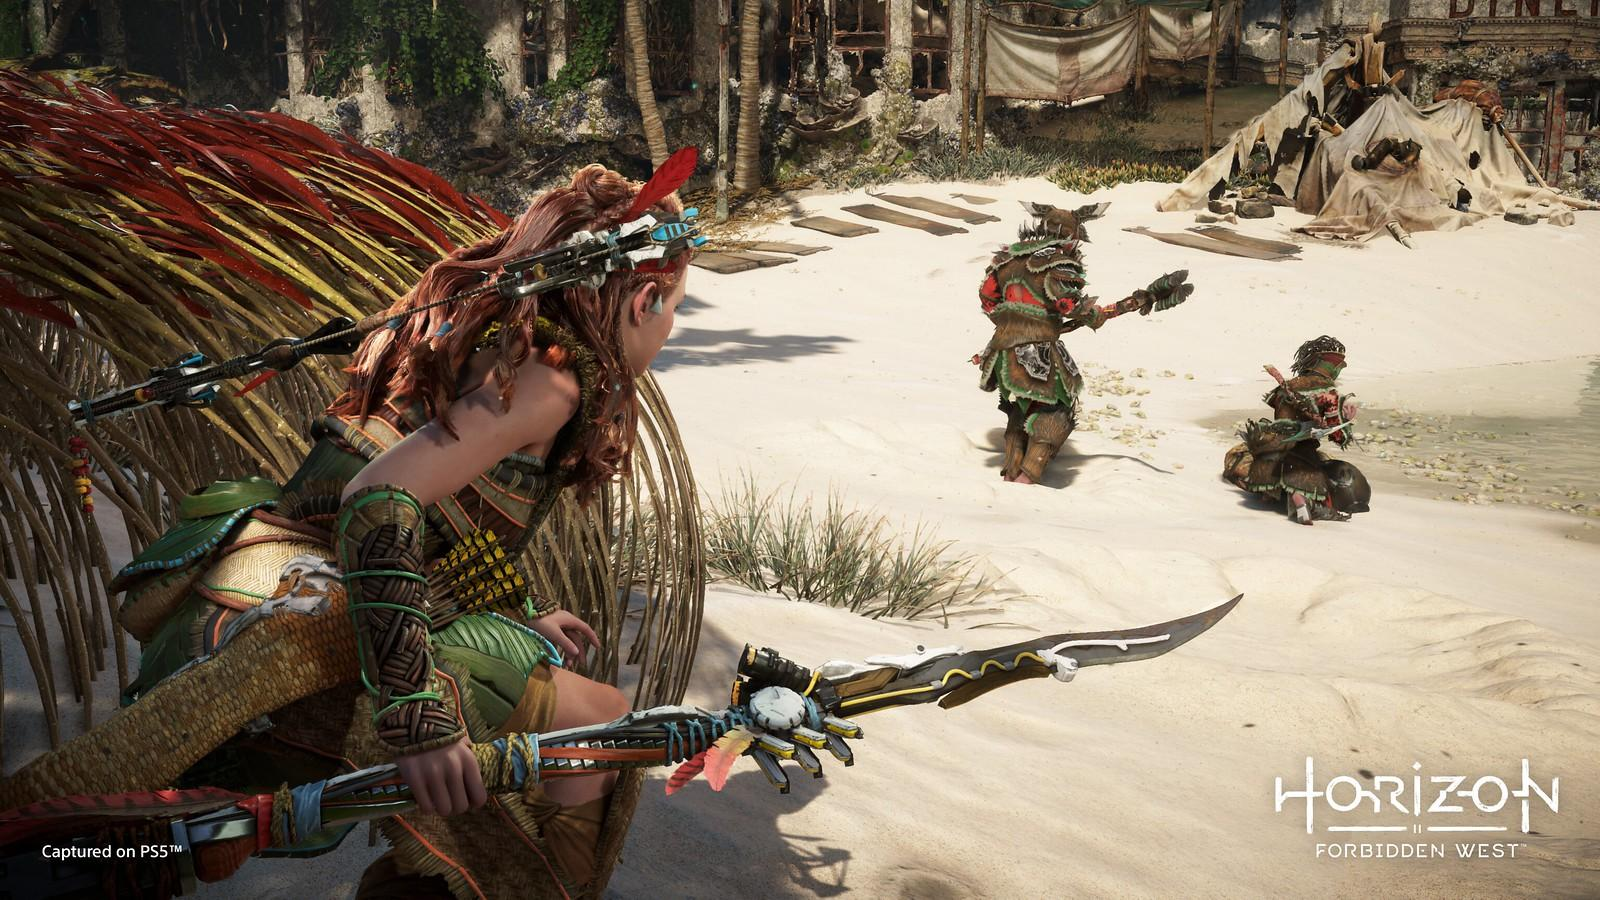 New footage of Horizon Forbidden West was revealed at Sony's State Of Play